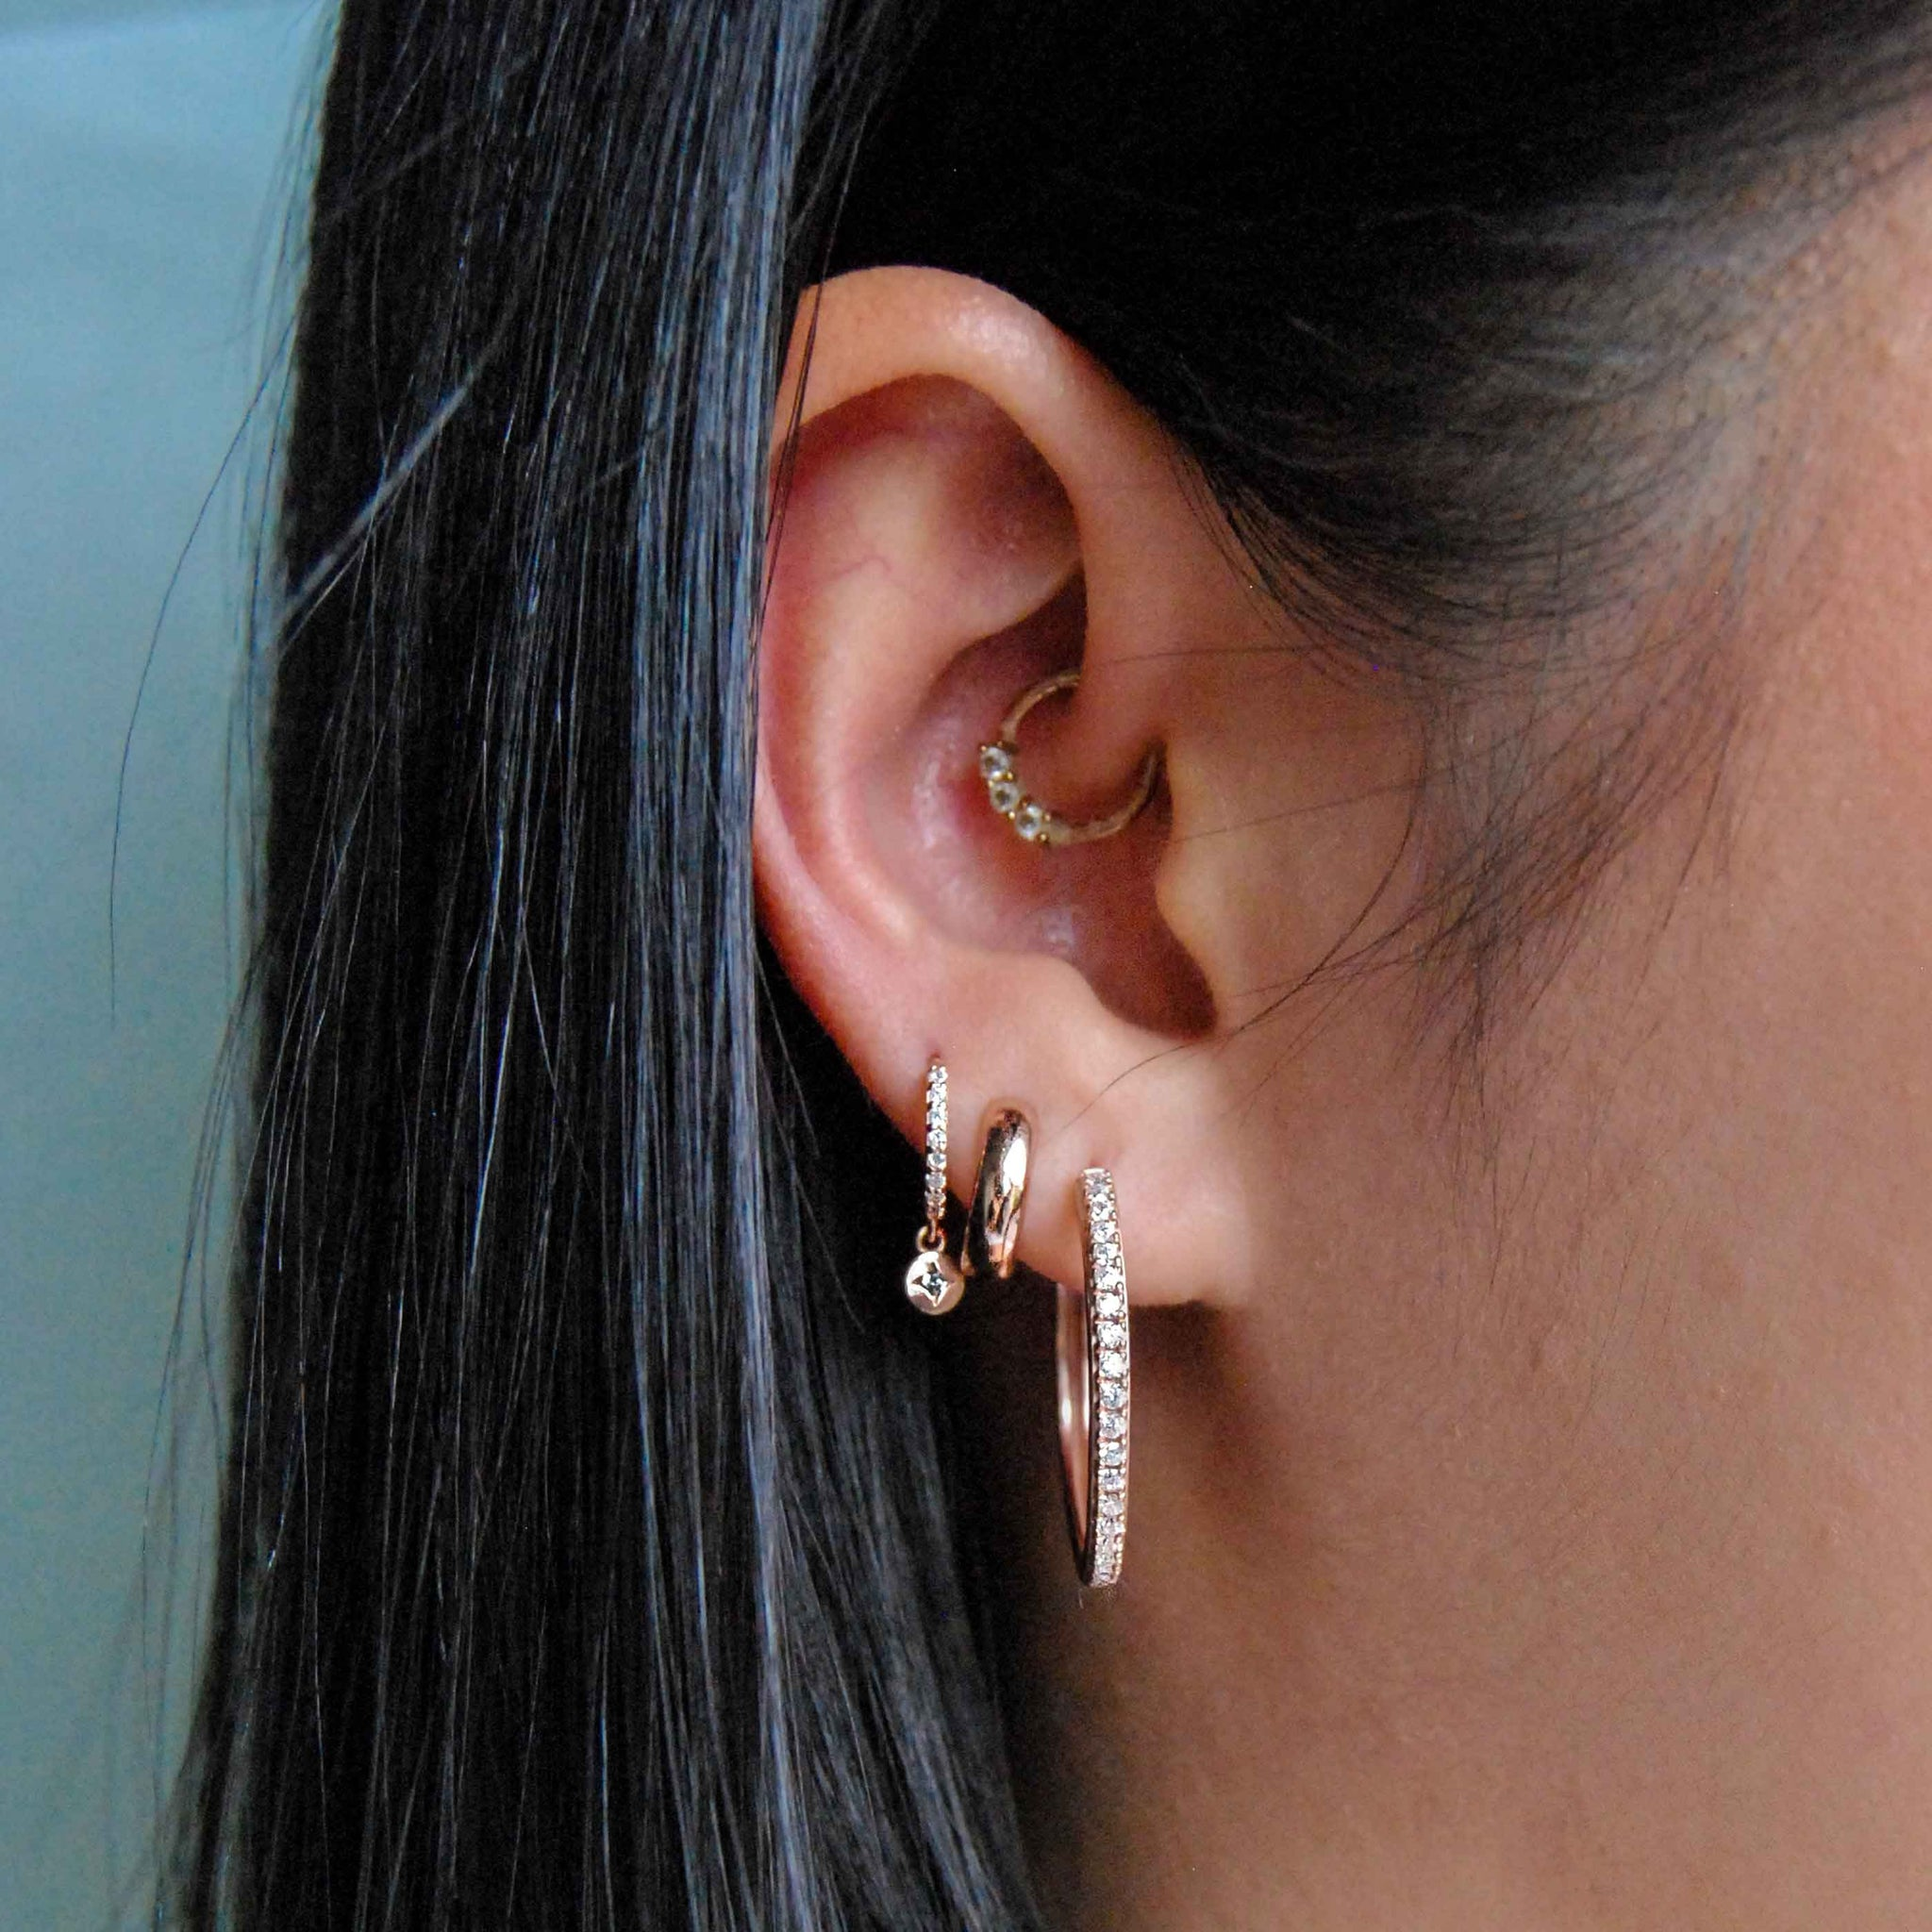 Bold Huggies in Rose Gold worn in second lobe piercing